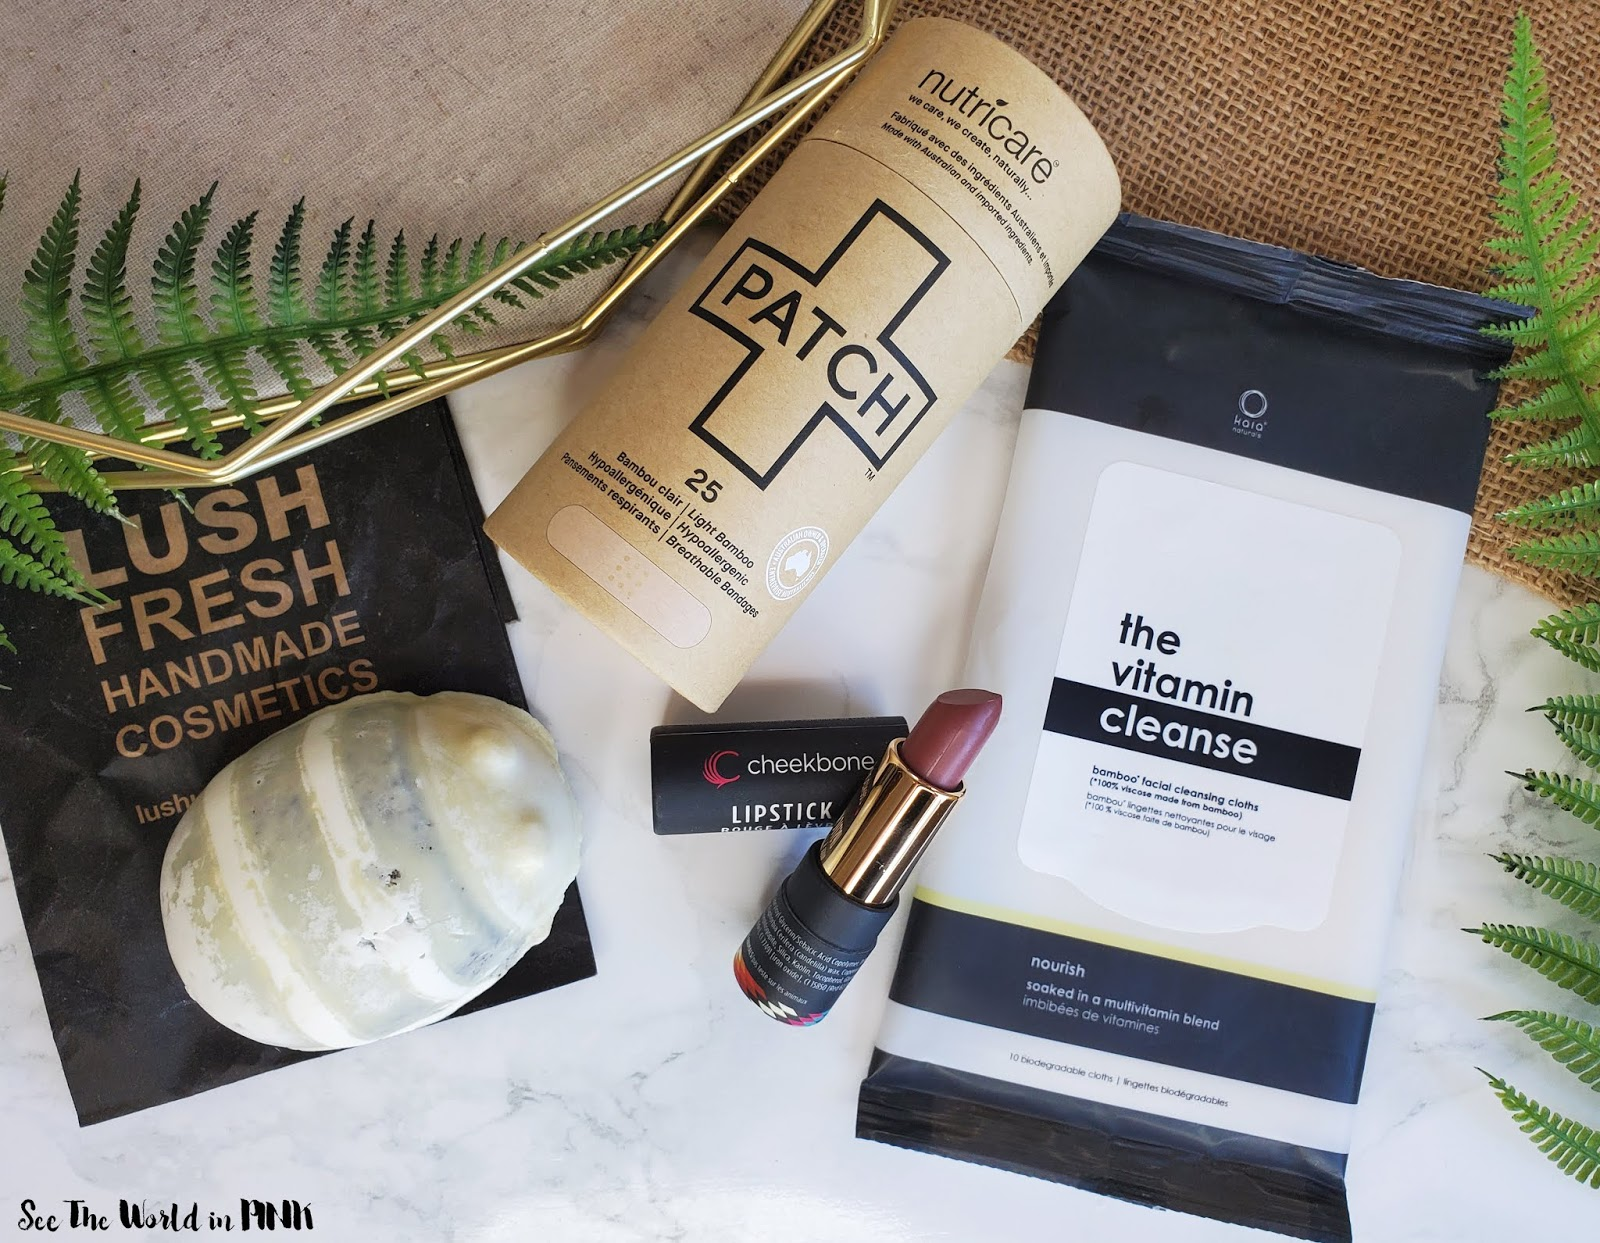 Earth Day Beauty - Compostable Makeup and Skincare Products